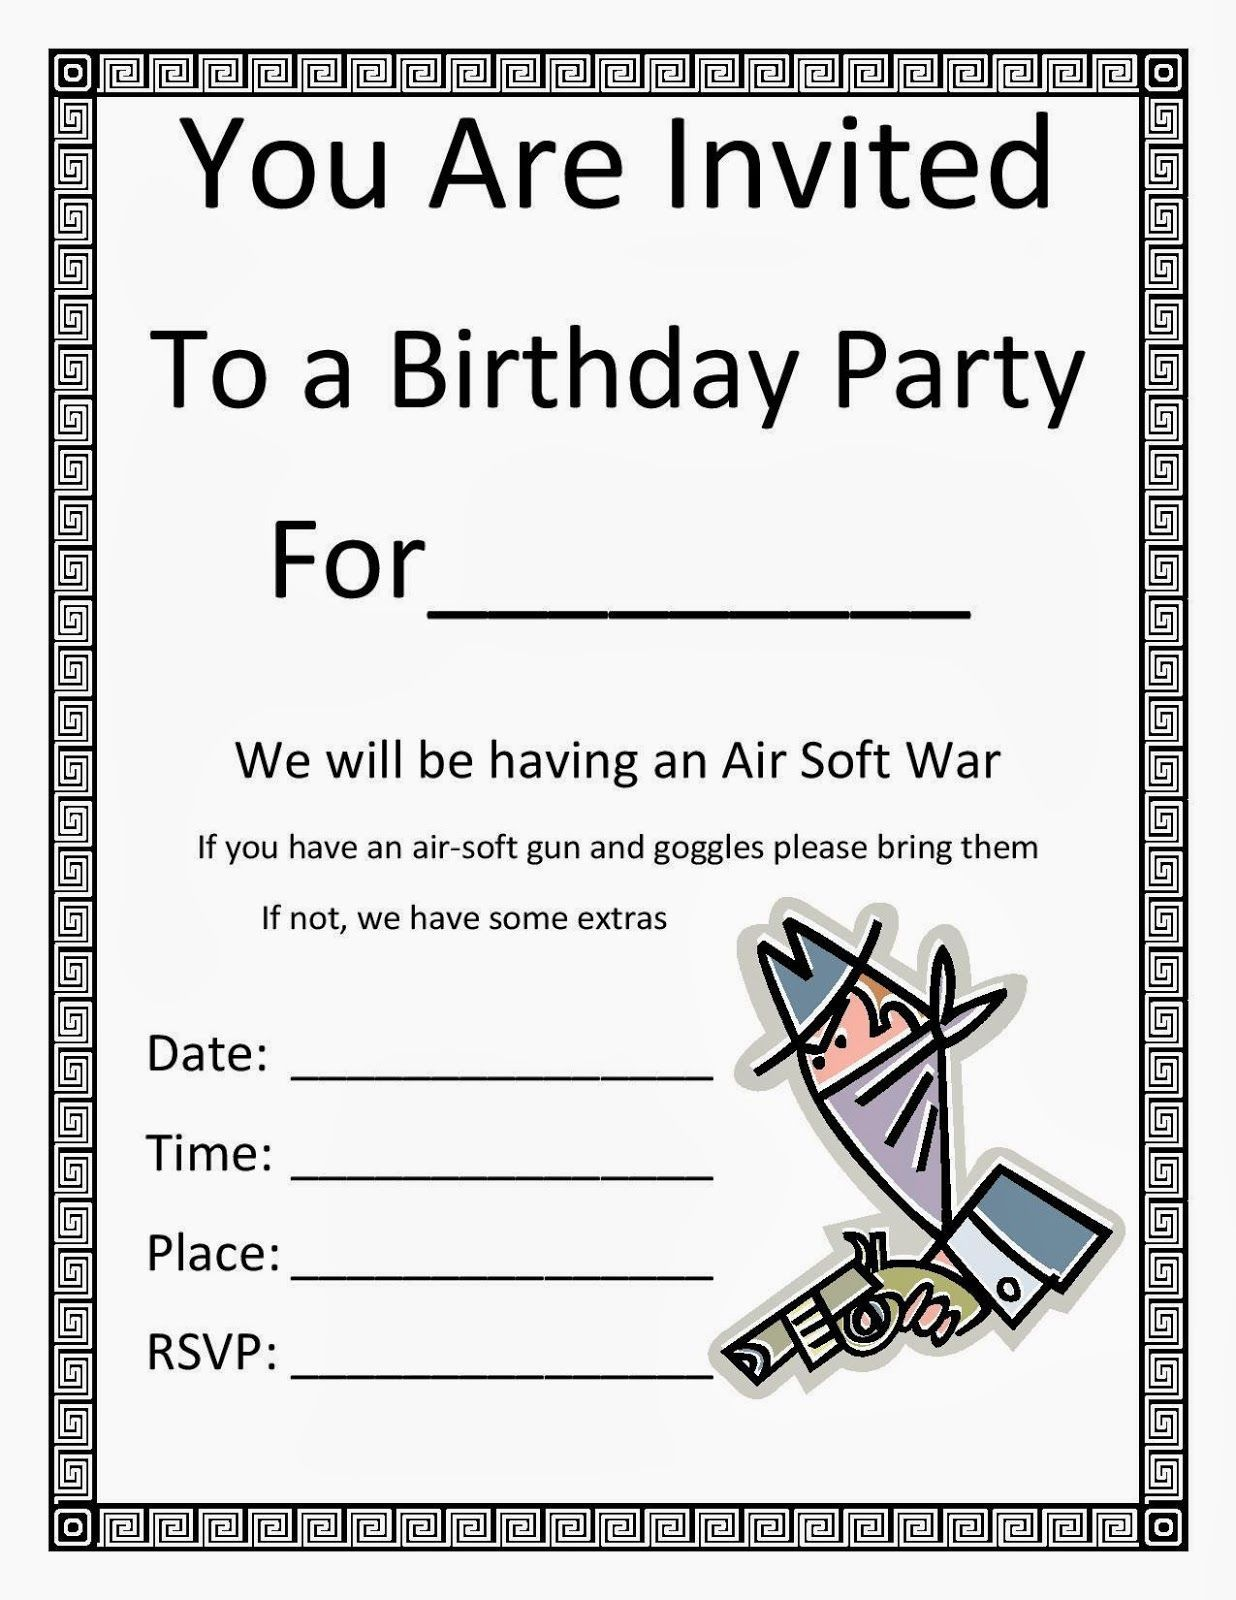 003 Exceptional Free Birthday Party Invitation Template For Word Sample Full